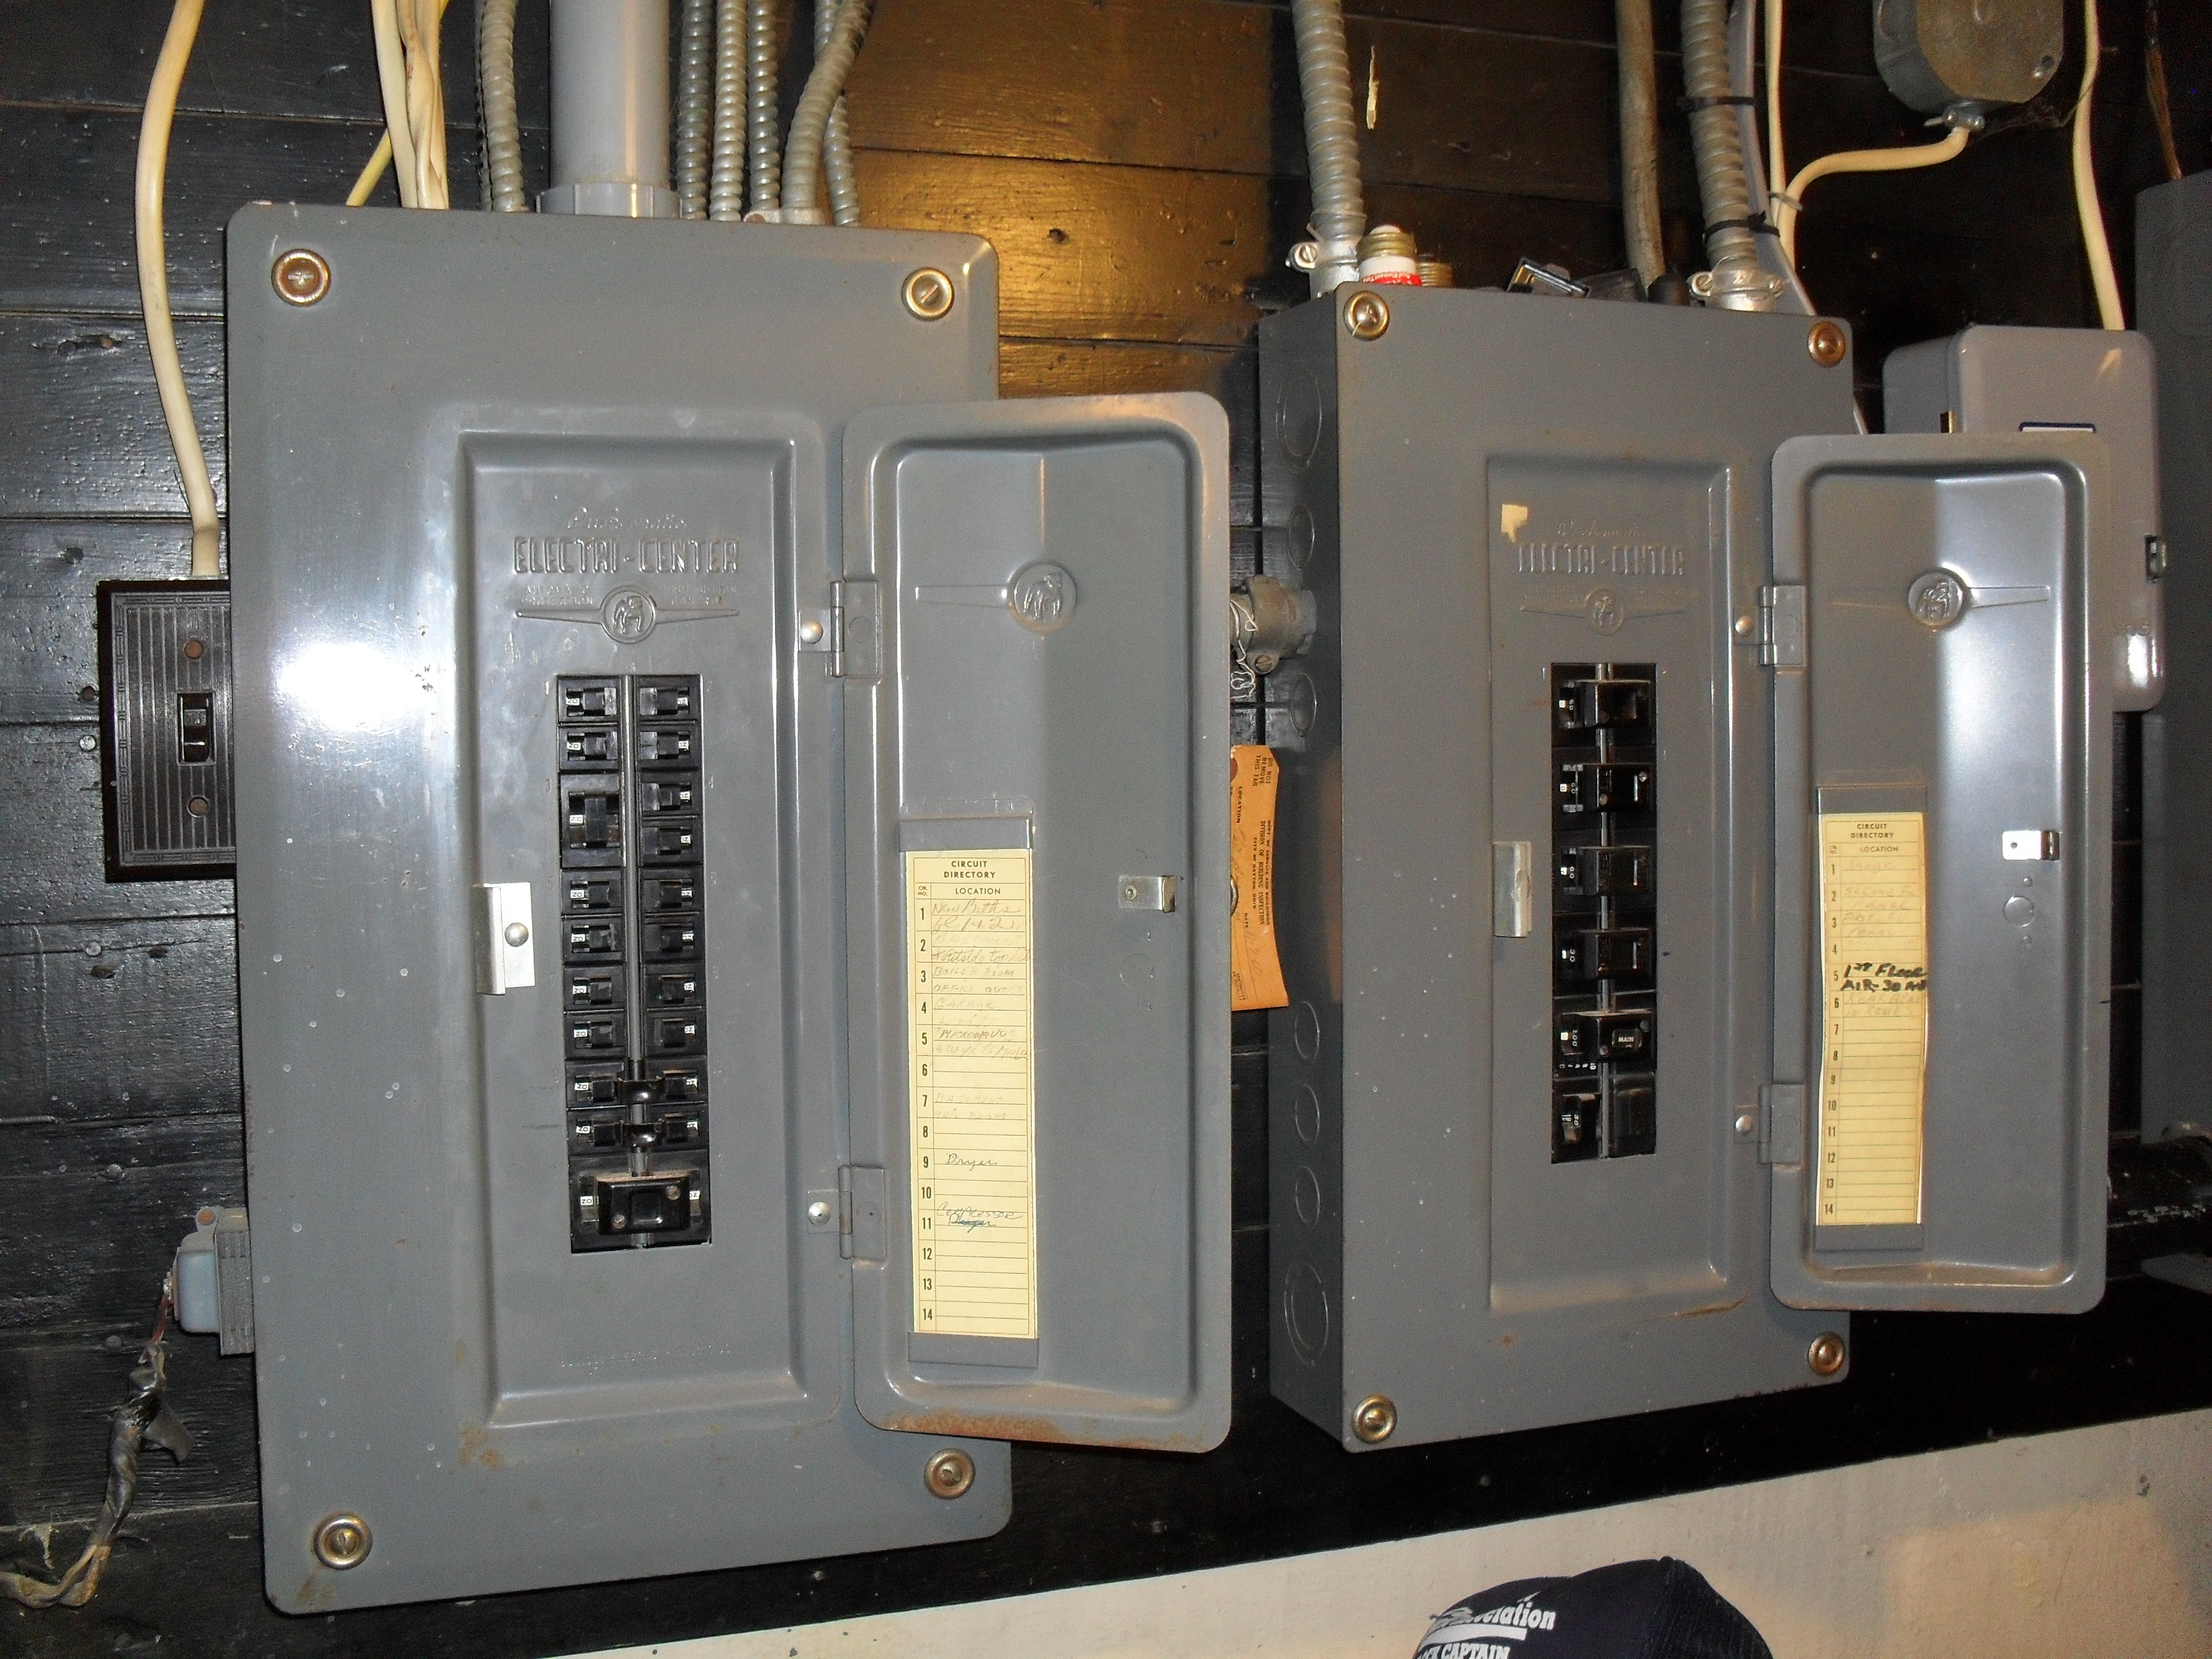 Wiring Fox Paw Heating Help The Wall Buss Fuse Box 1960s One On First Floor And Second Third Is Feed Off Of Panel Its 200 Amp Service